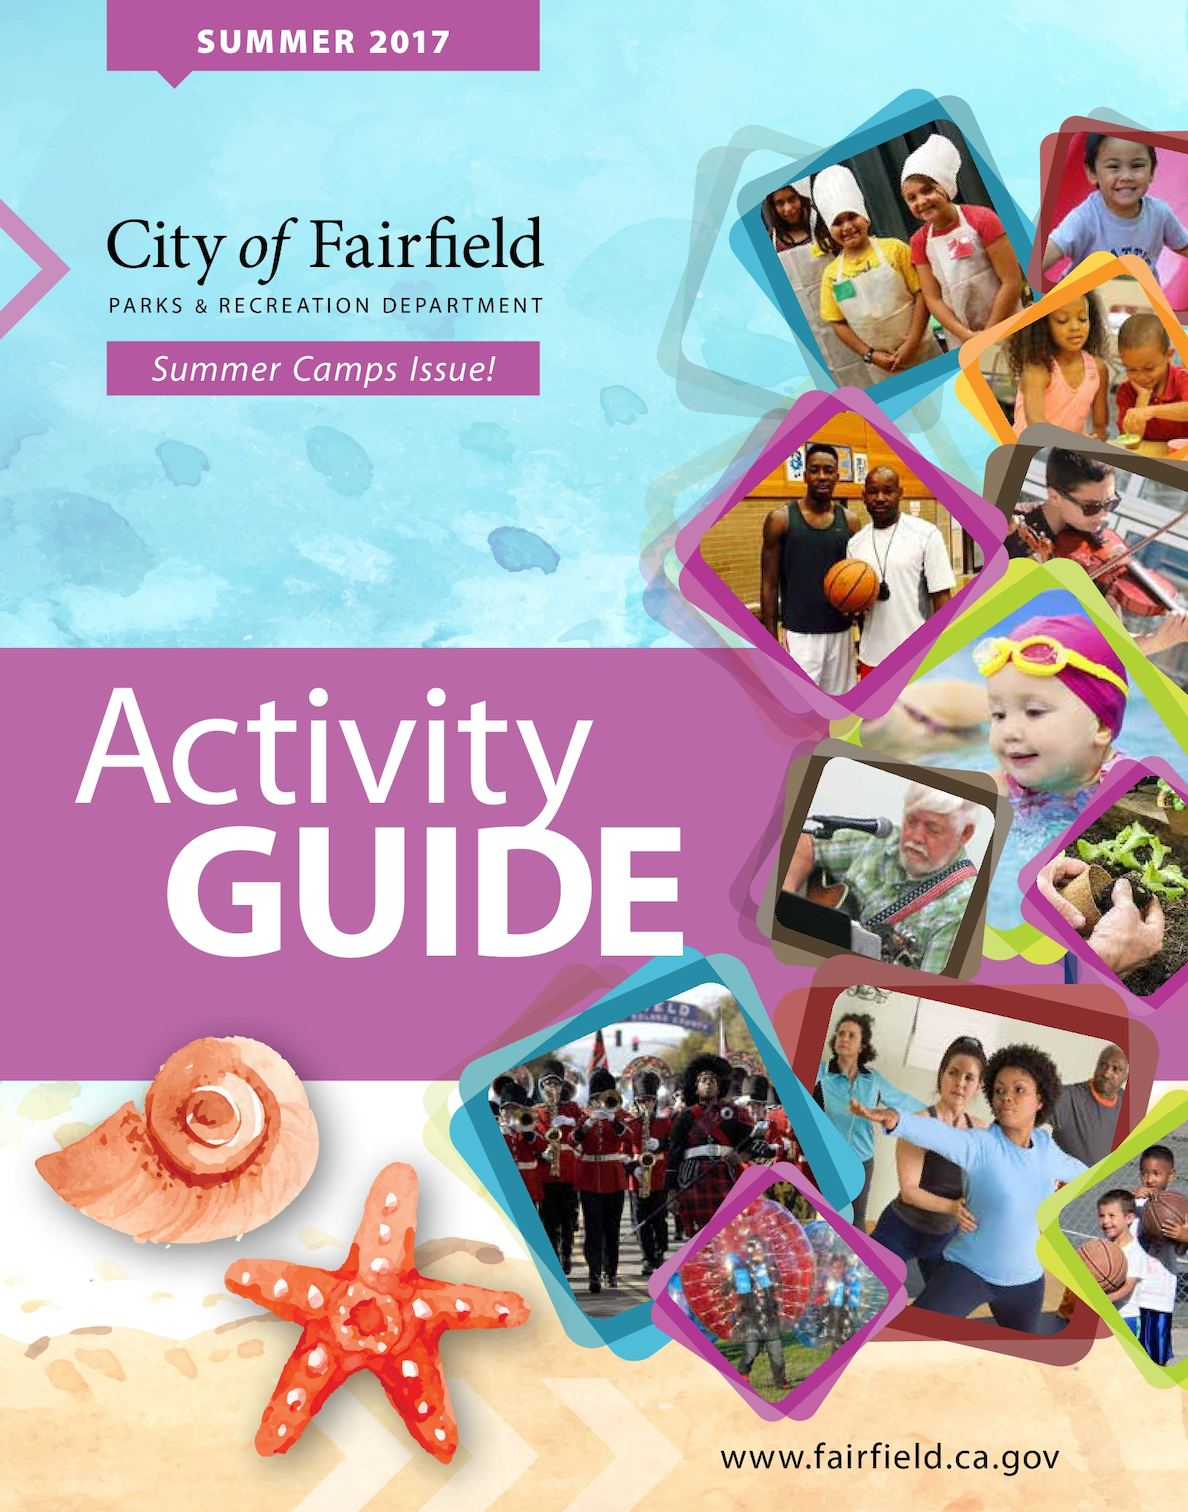 Calaméo - City of Fairfield Summer 2017 Activity Guide